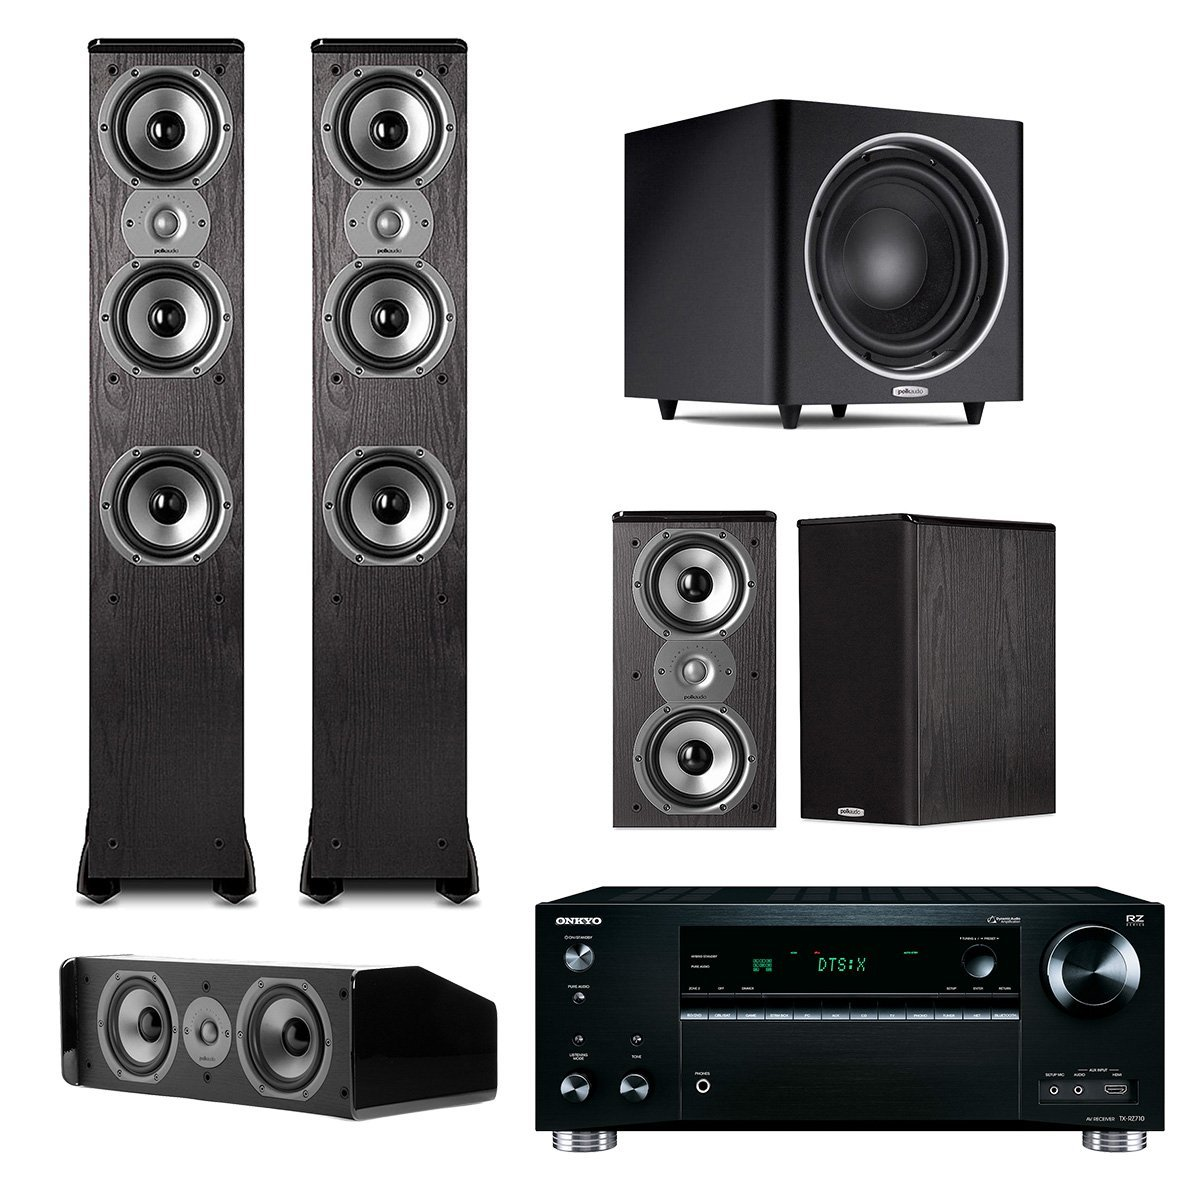 Best 7.1 Home Theater System 2017 2